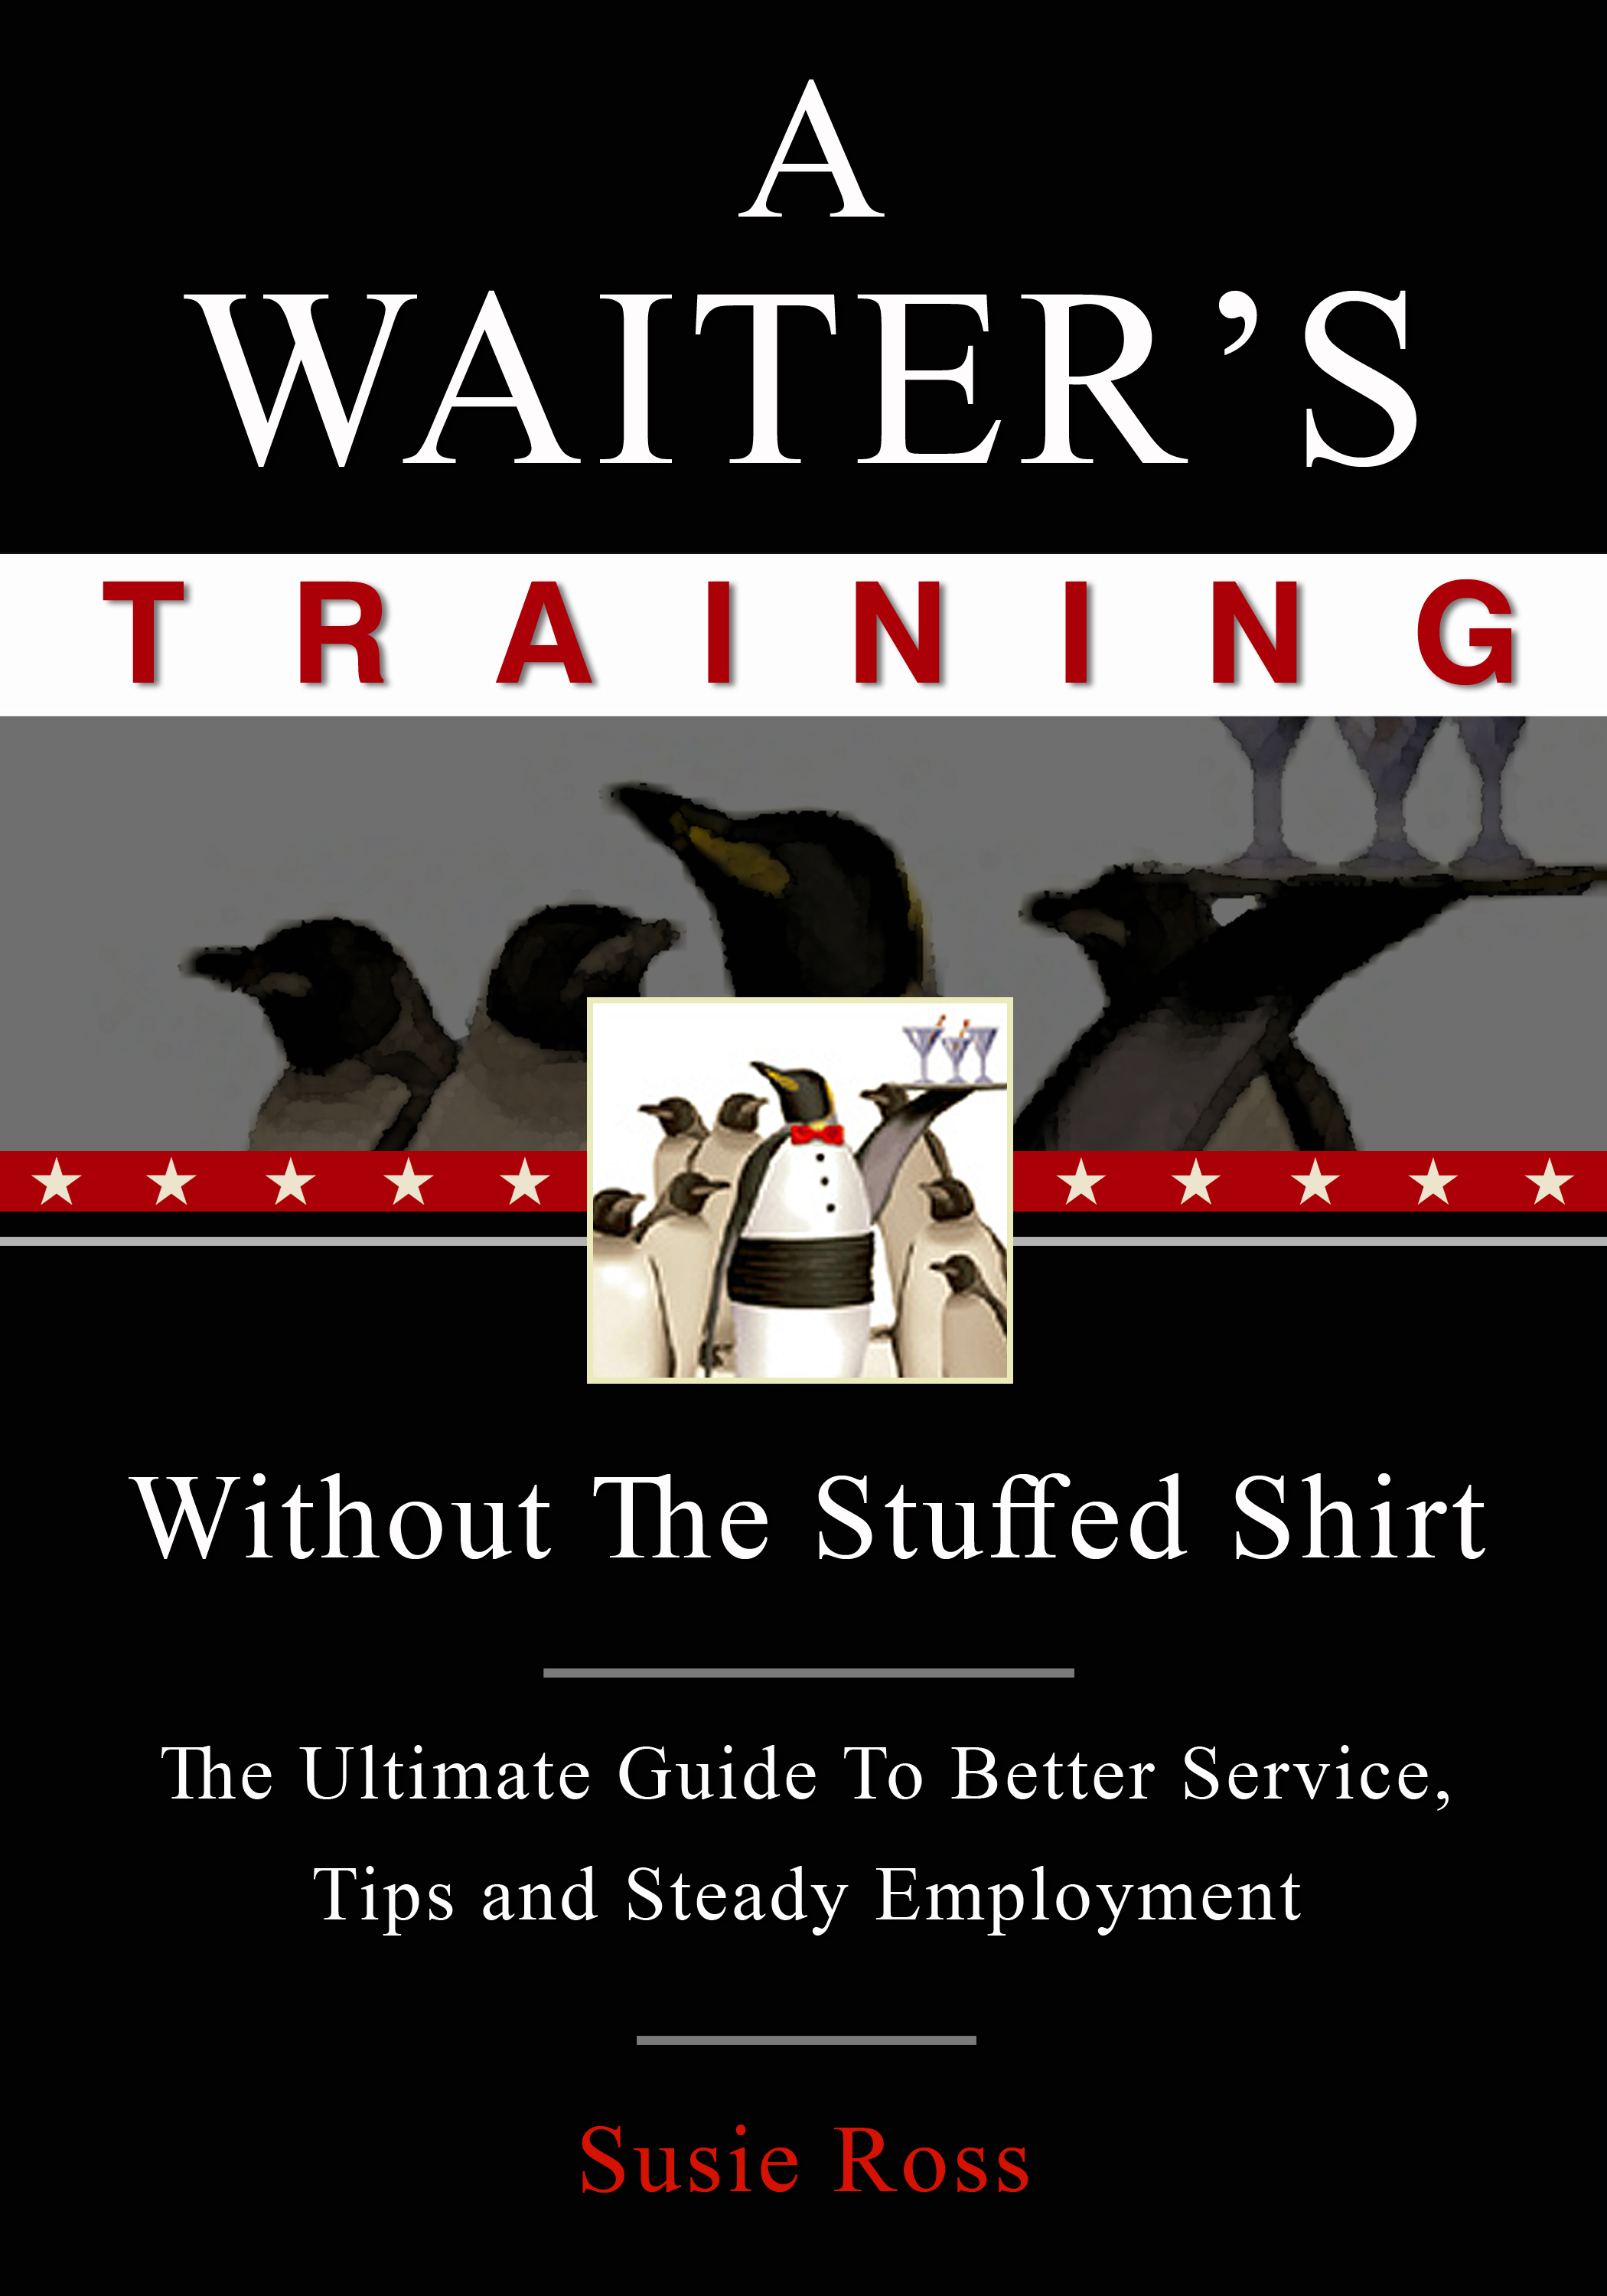 A Waiter's Training Without The Stuffed Shirt: eBook Author: Susie Ross